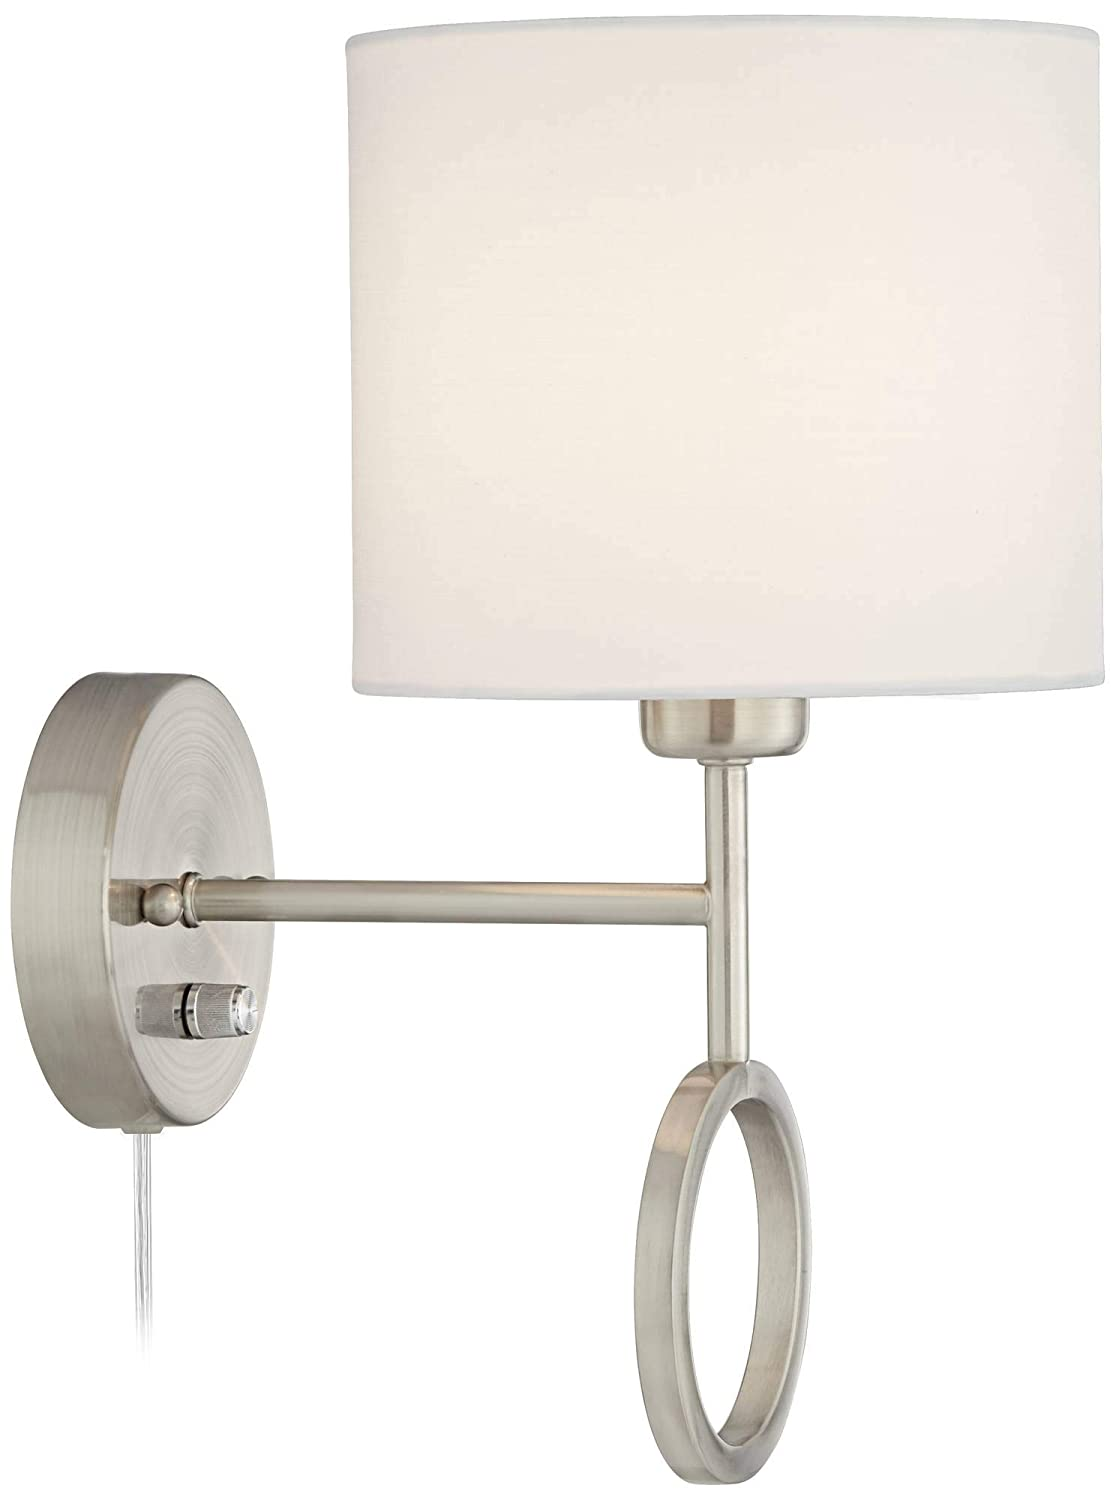 Amidon Wall Lamp Plug in Warm Brass Ring White Drum Shade for Bedroom Living Room Reading 360 Lighting